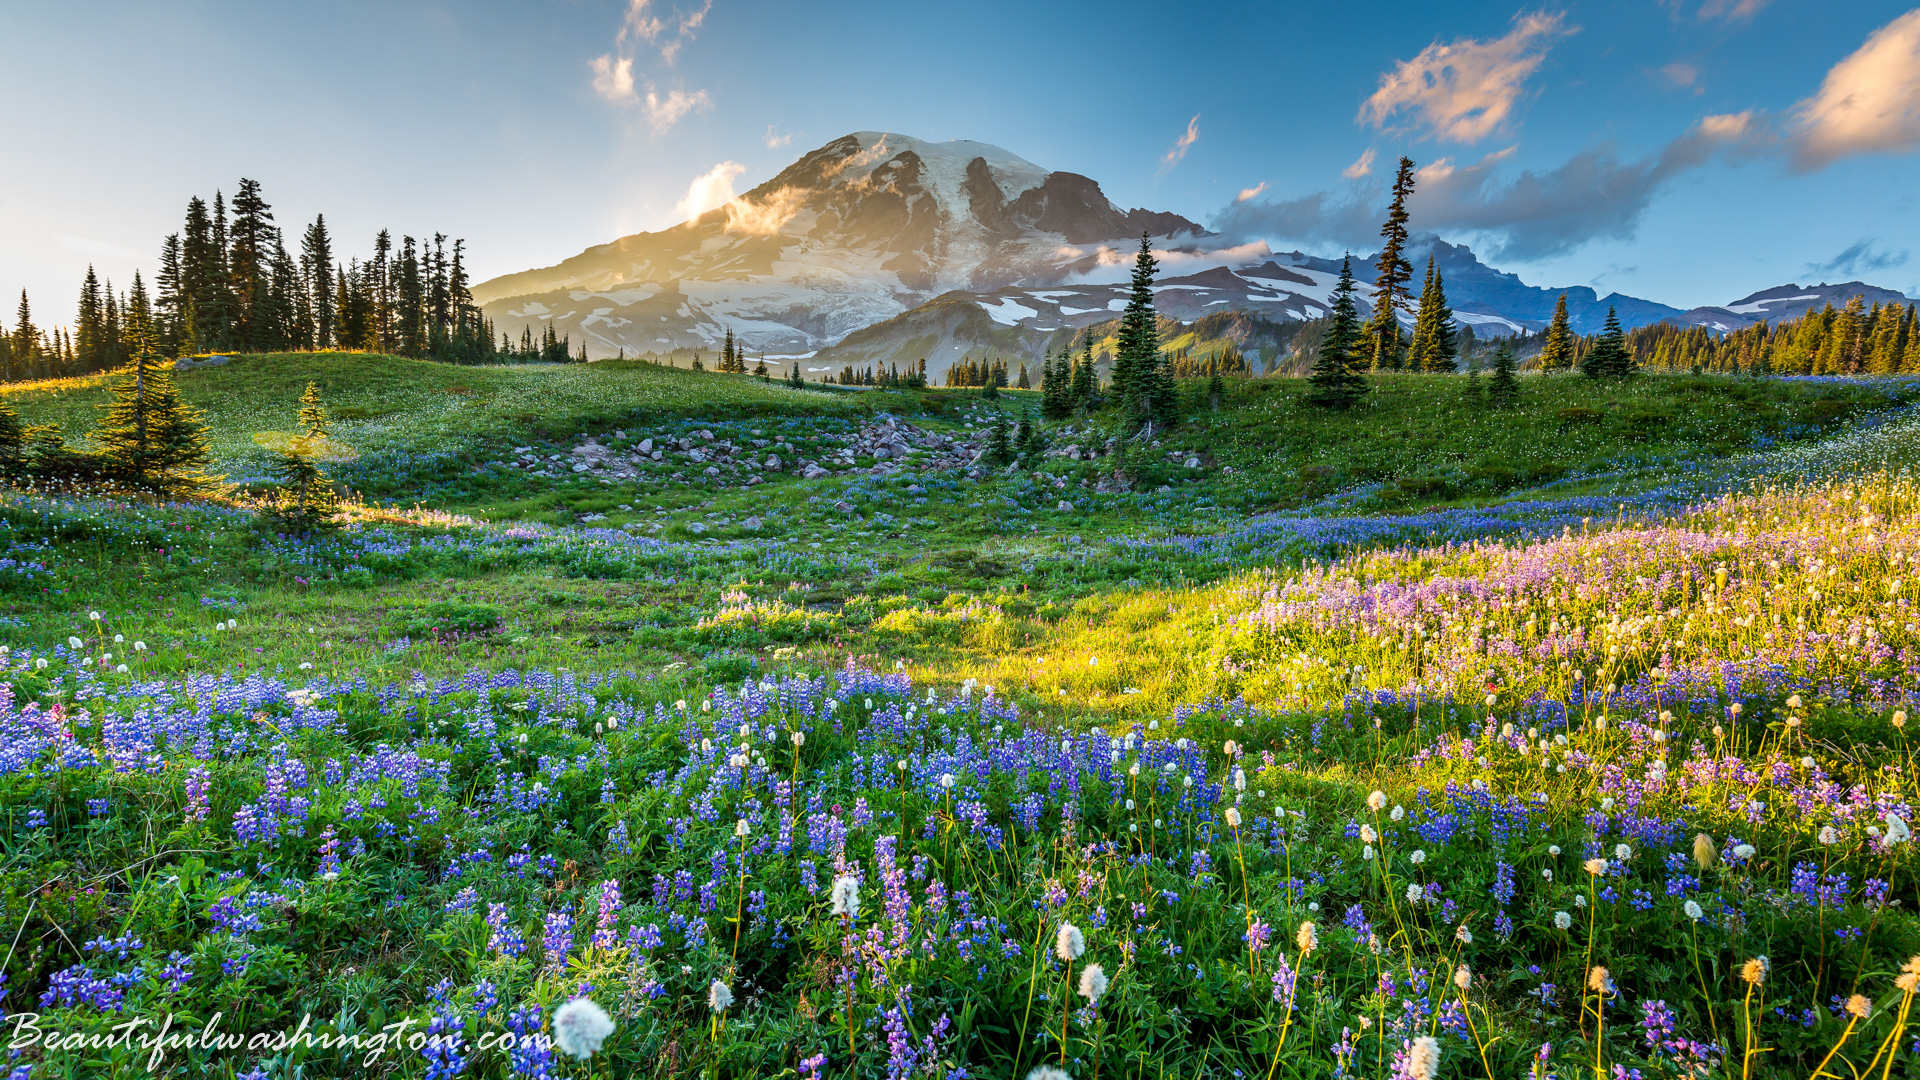 Pictures of washington state parks Sports News & Articles Scores, Pictures, Videos - ABC News